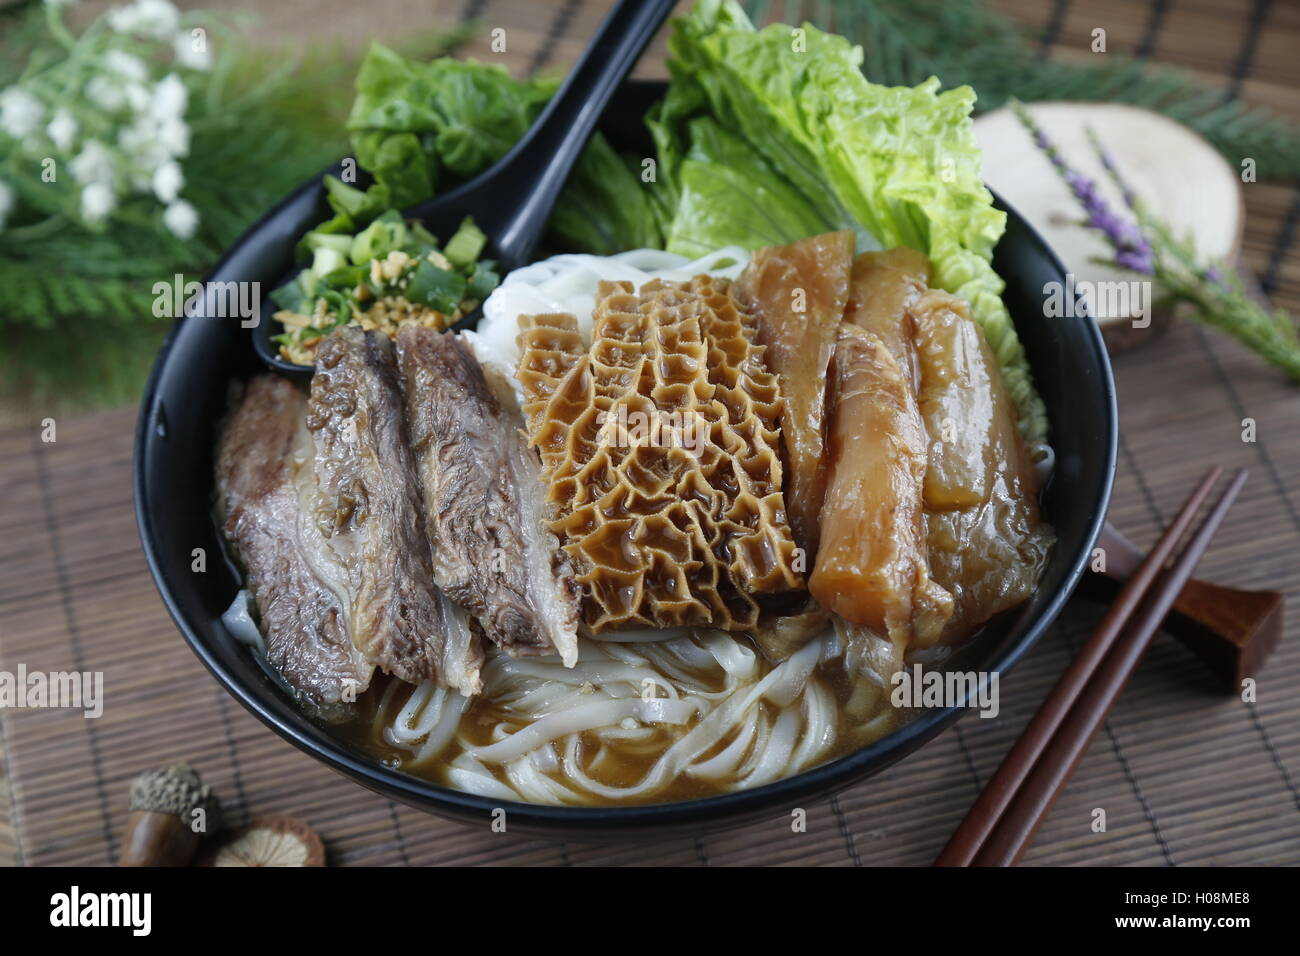 Chinese bowl of vermicelli noodle with fried beef, cow's stomach and salad on the table - Stock Image